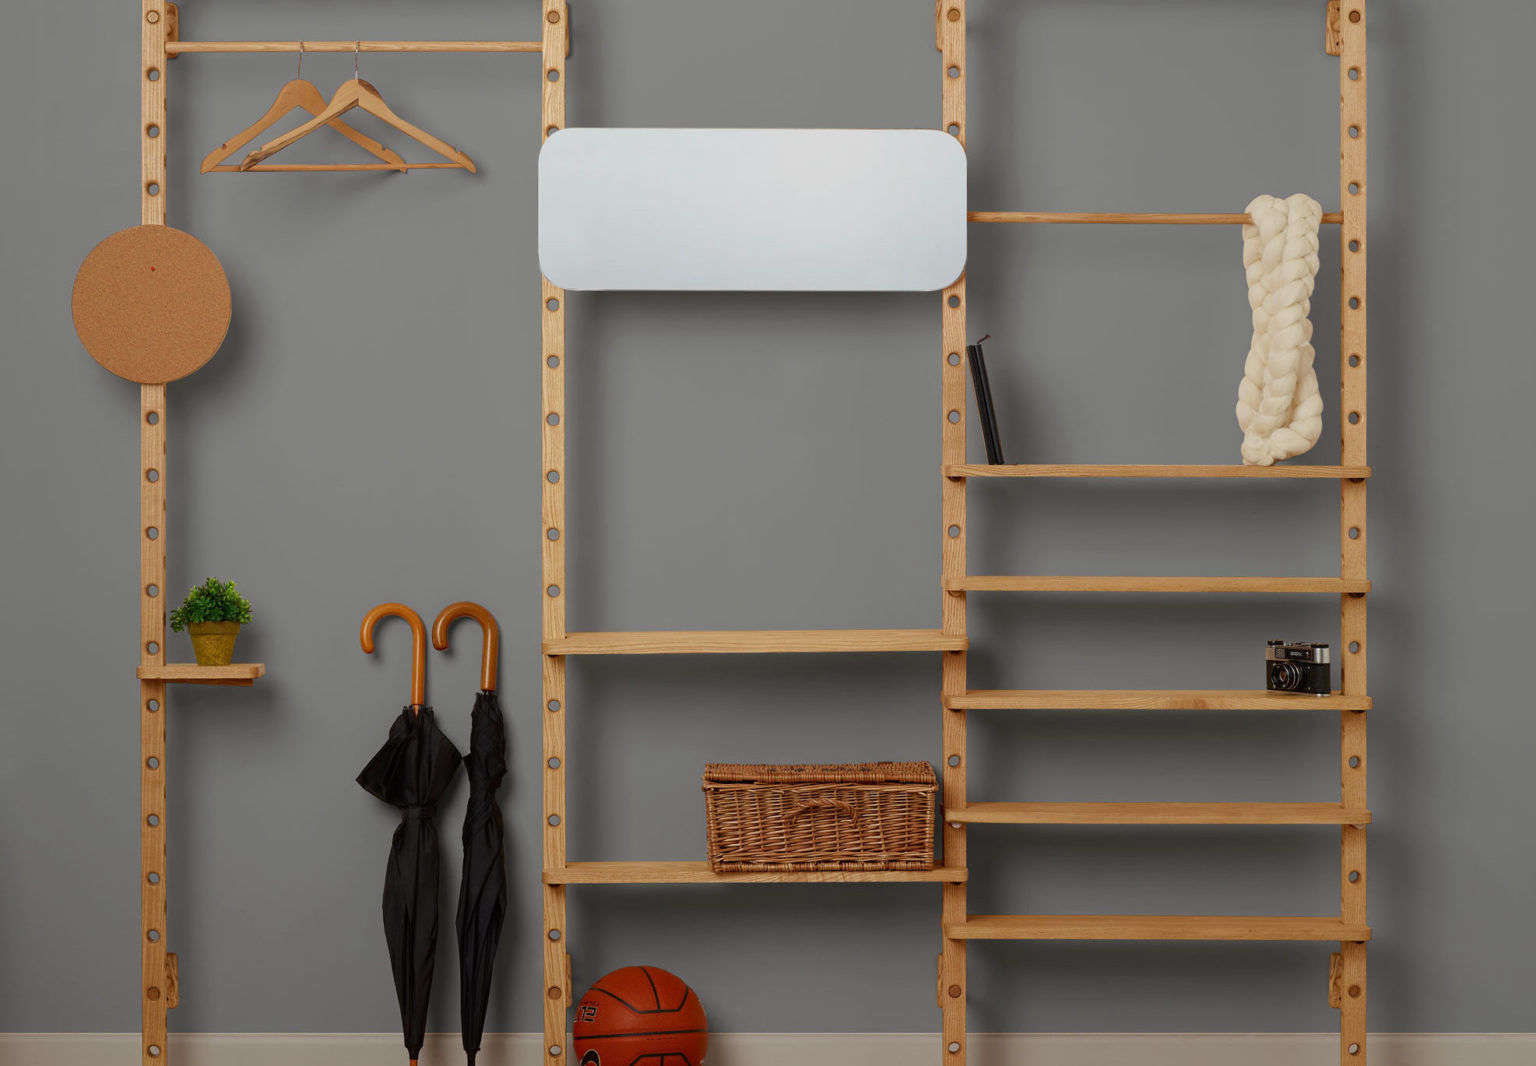 Customizable Wood Shelving And Accessories By Leonid Davydov From